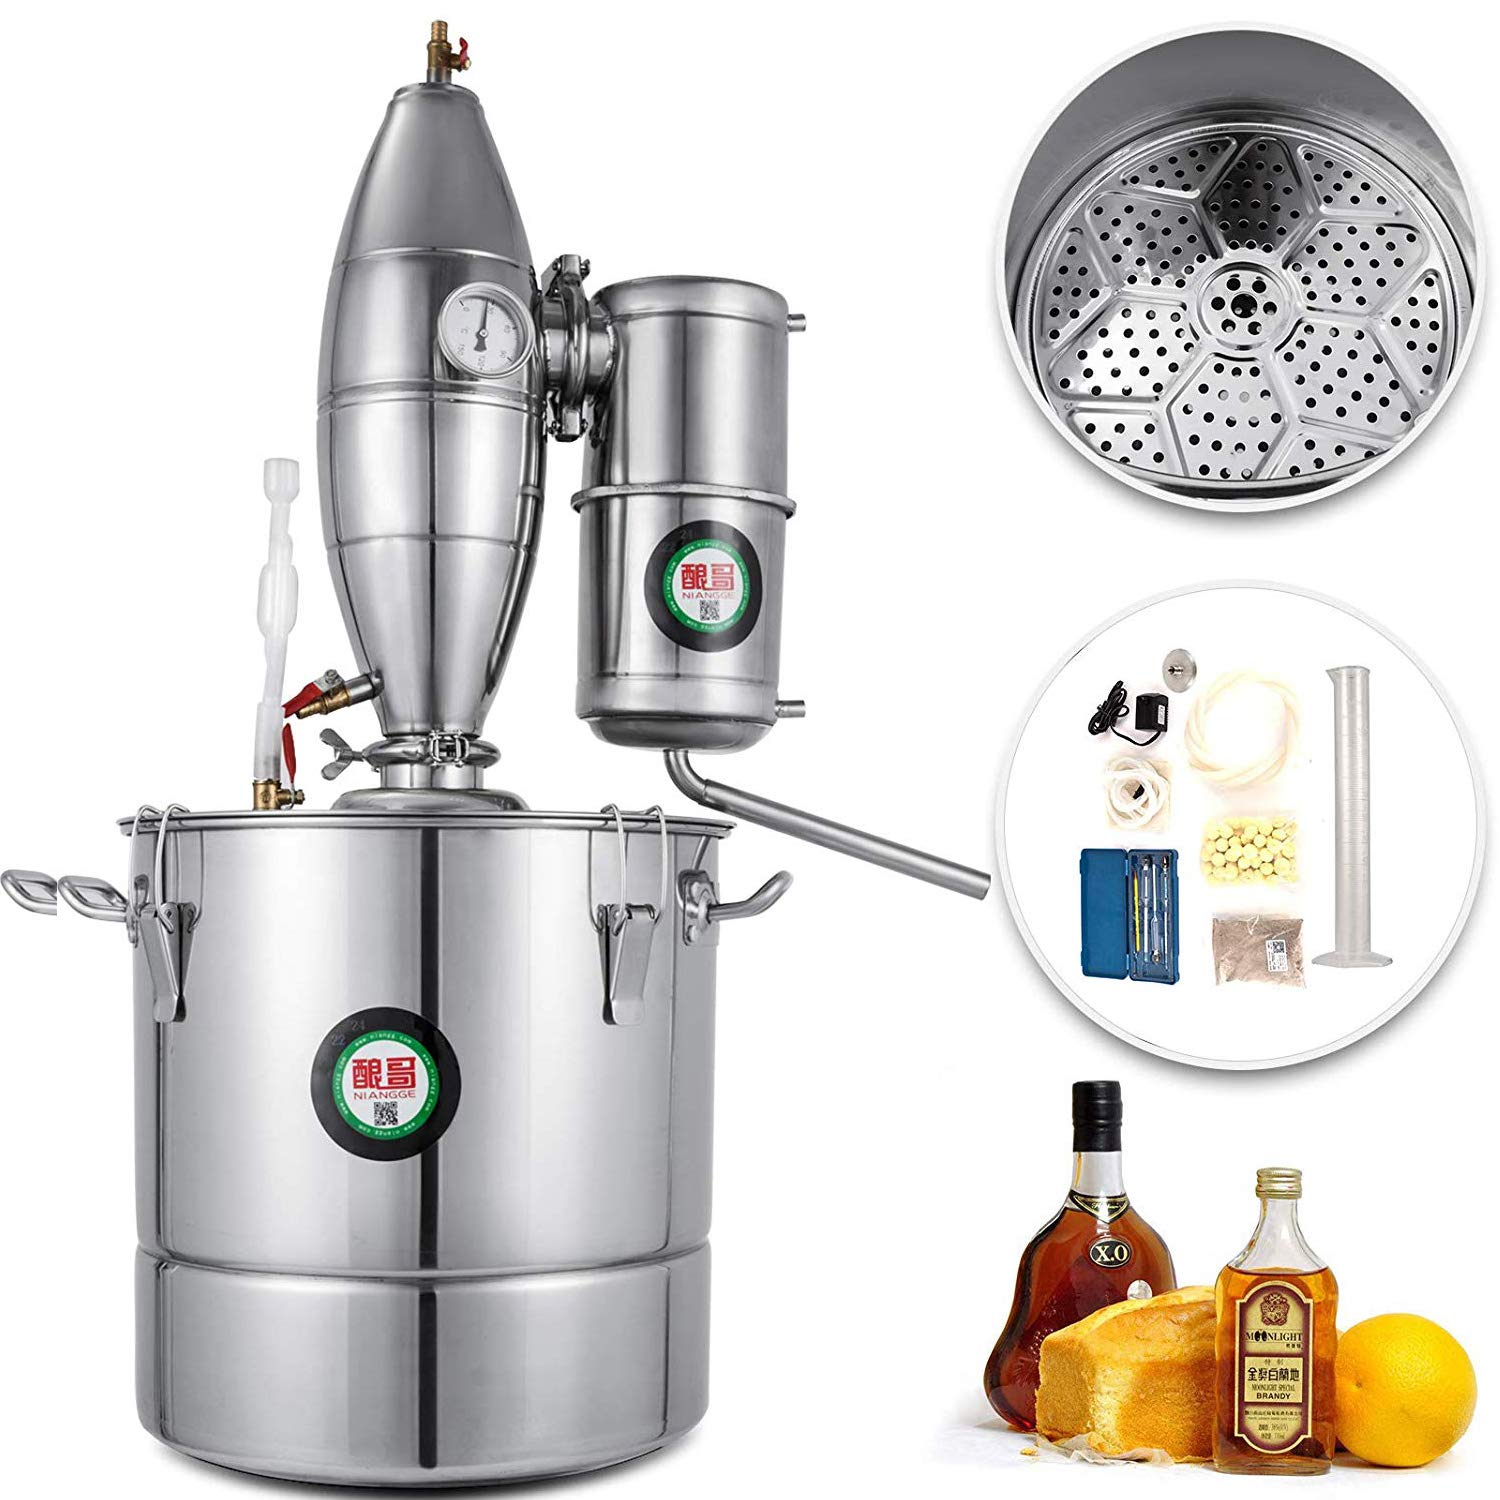 Happybuy Water Alcohol Distiller 30L/7.9Gal Alcohol Distiller Equipped with Water Pump and Thermometer Stainless Steel Wine Making Kit Home Brewing Kit